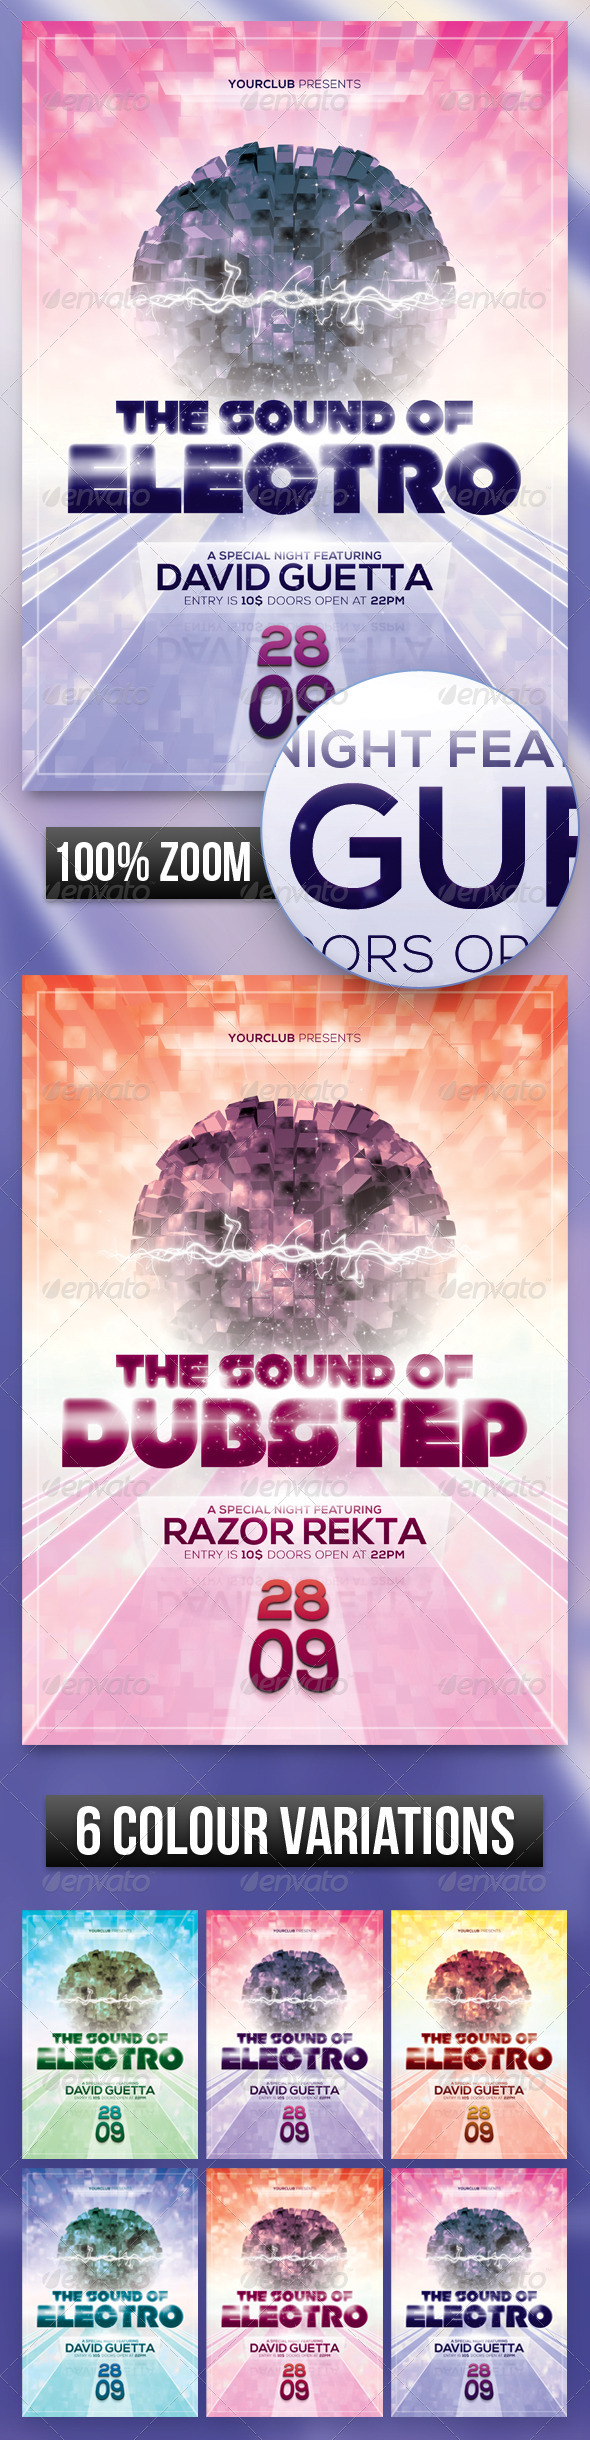 GraphicRiver A4 Electro Dubstep Club Poster Flyer 5482832